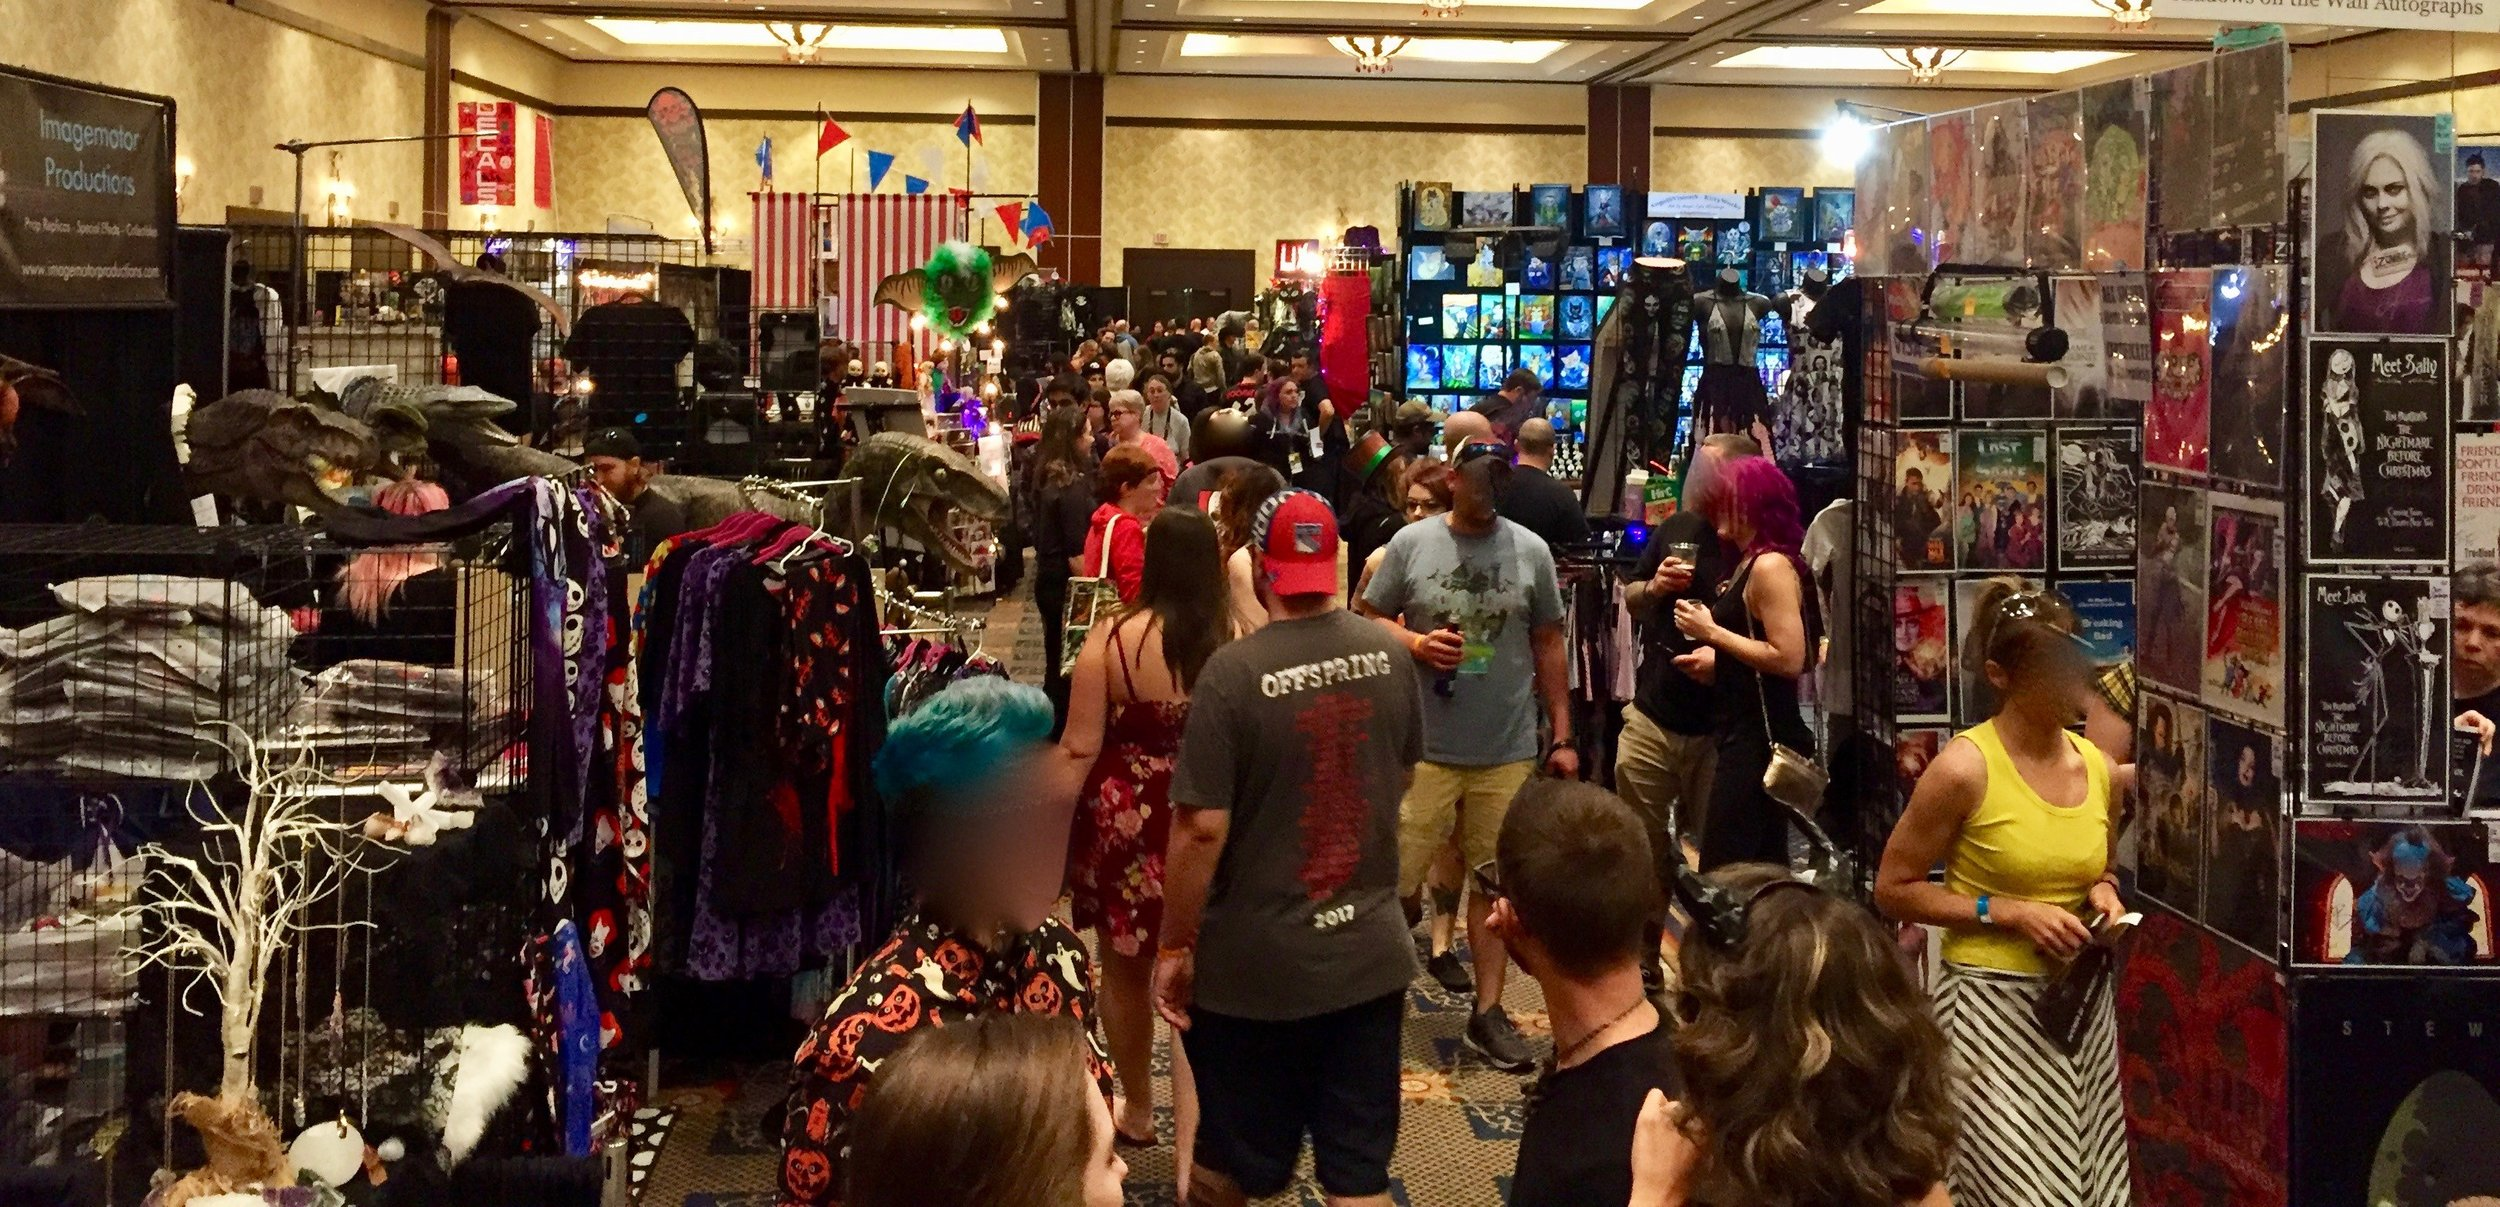 The famous Spooky Empire vendors room from another angle.